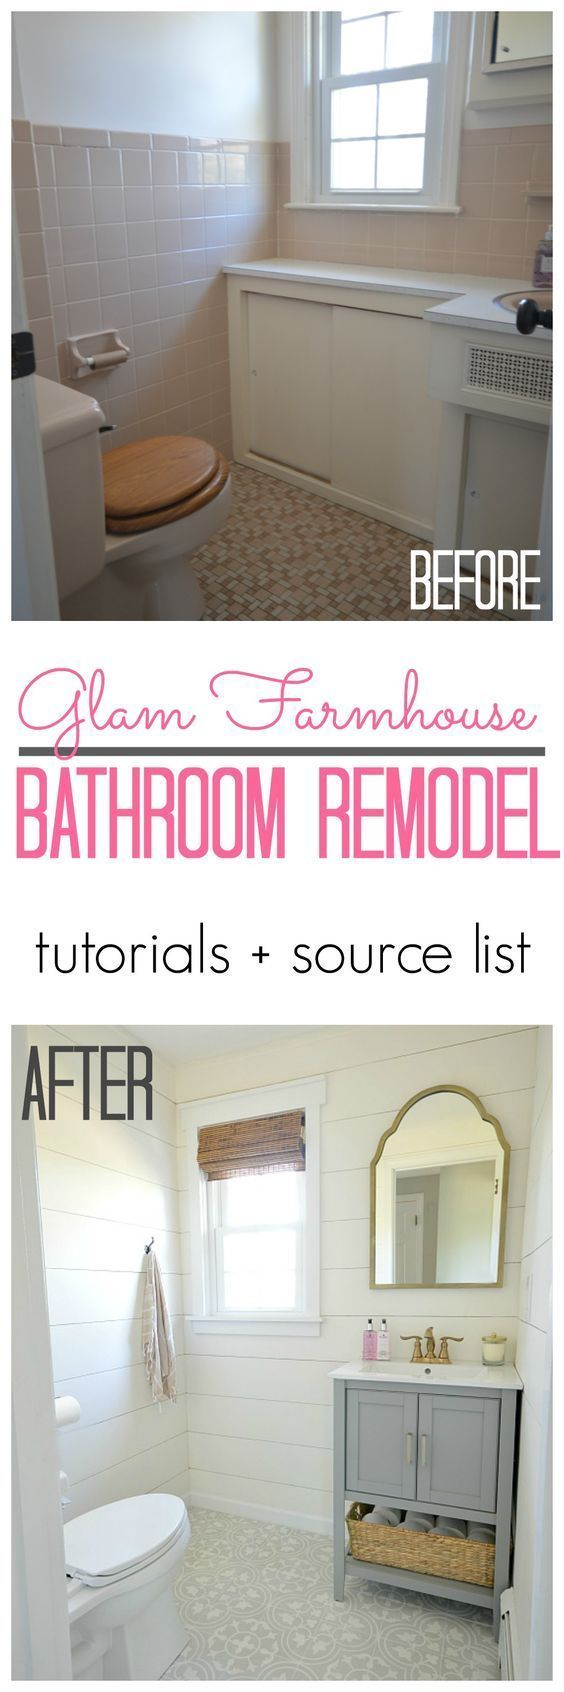 Glam Farmhouse Bathroom Reveal. A 1960s pink powder room is transformed with cement tile and shiplap walls. Full tutorials and before and after pictures.